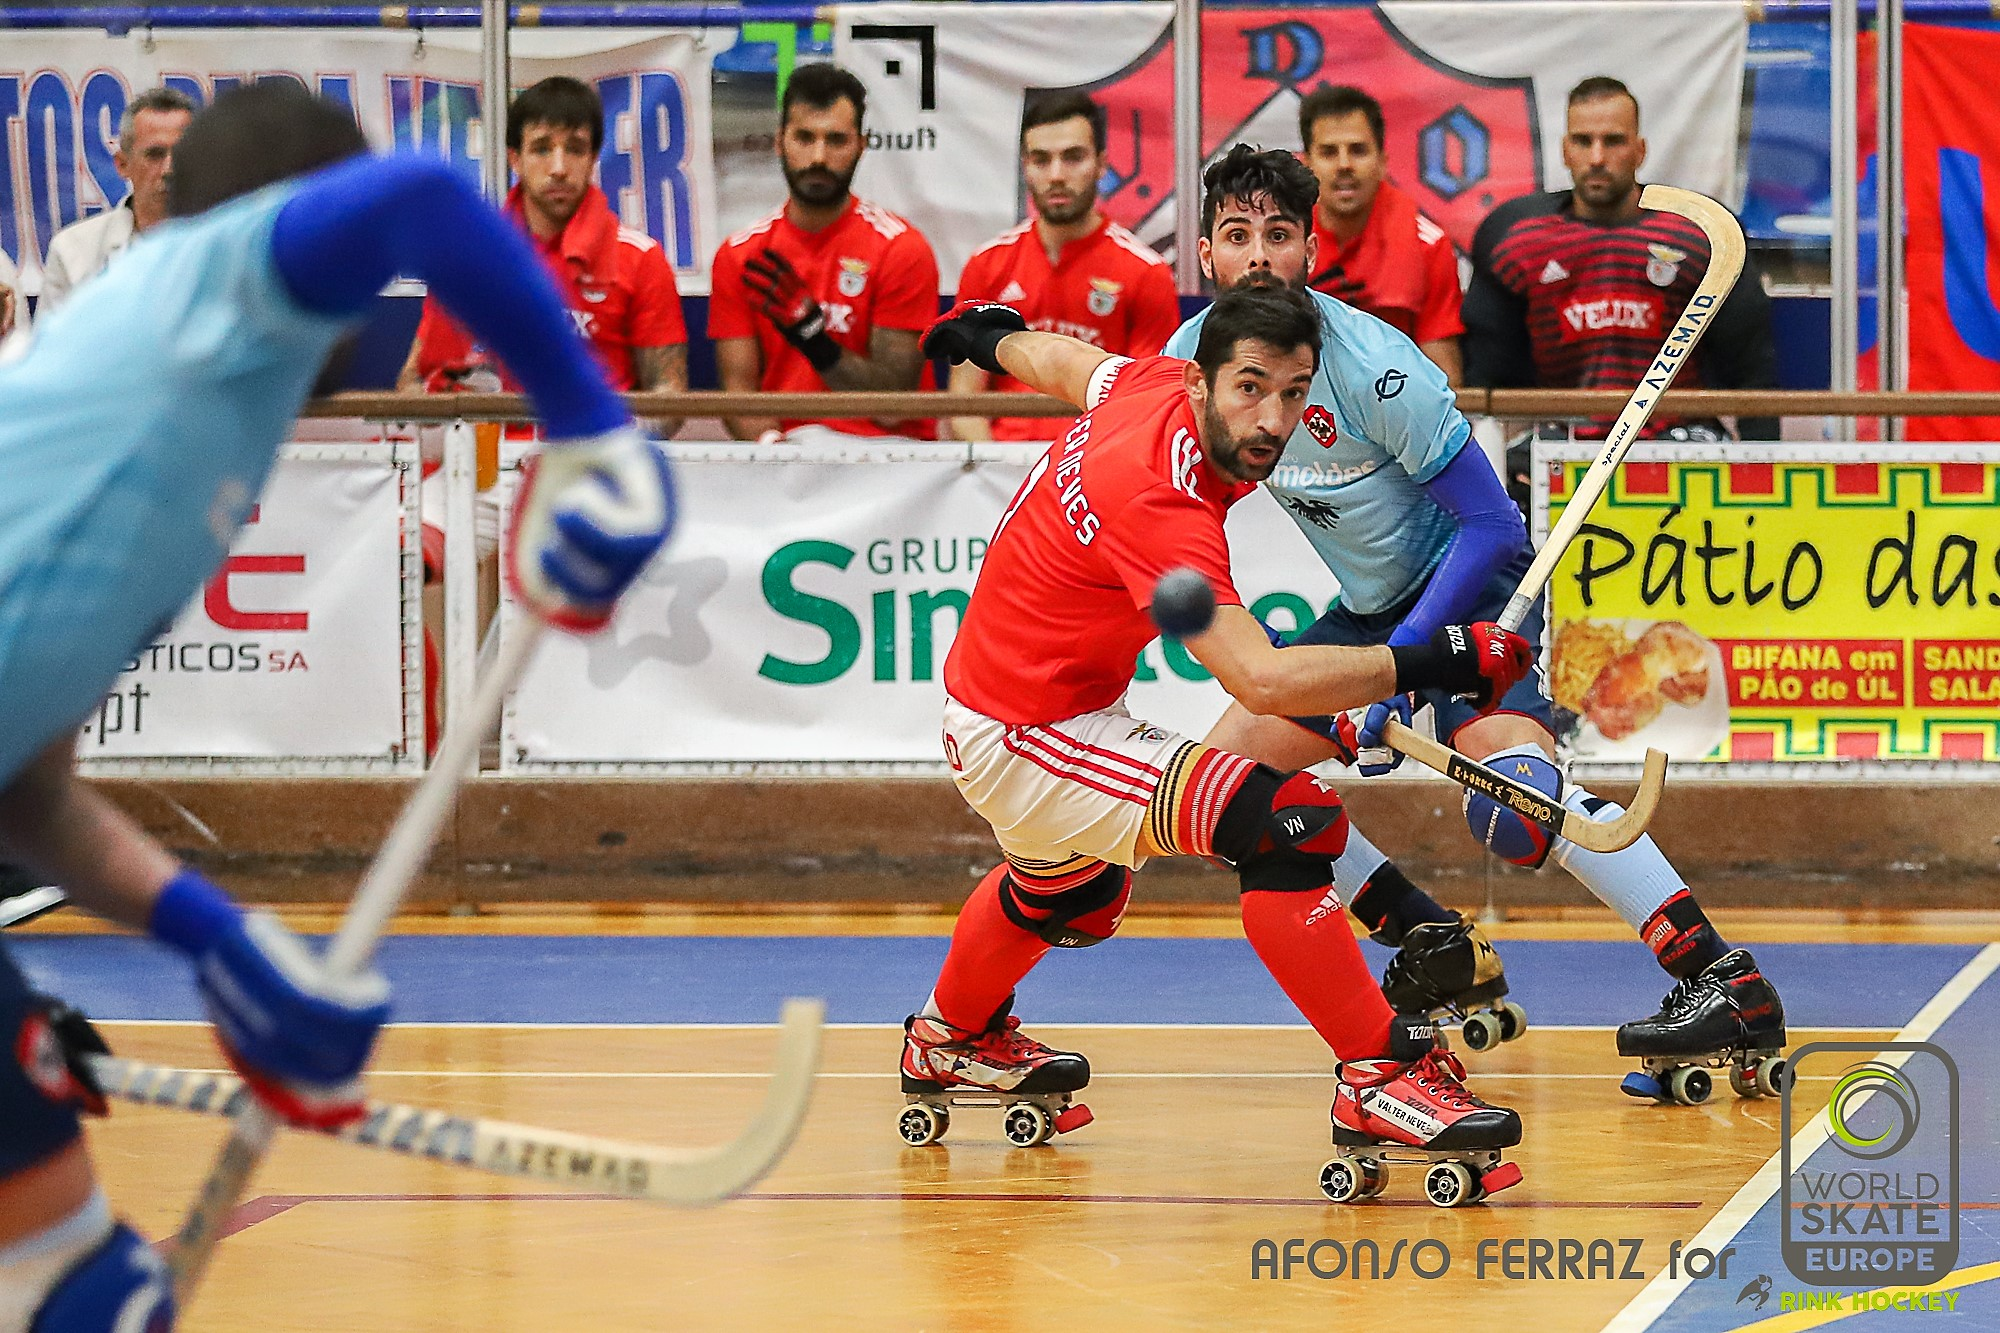 PHOTOS – 23/03/2019 - EUROLEAGUE - Oliveirense (PT) x Benfica (PT)